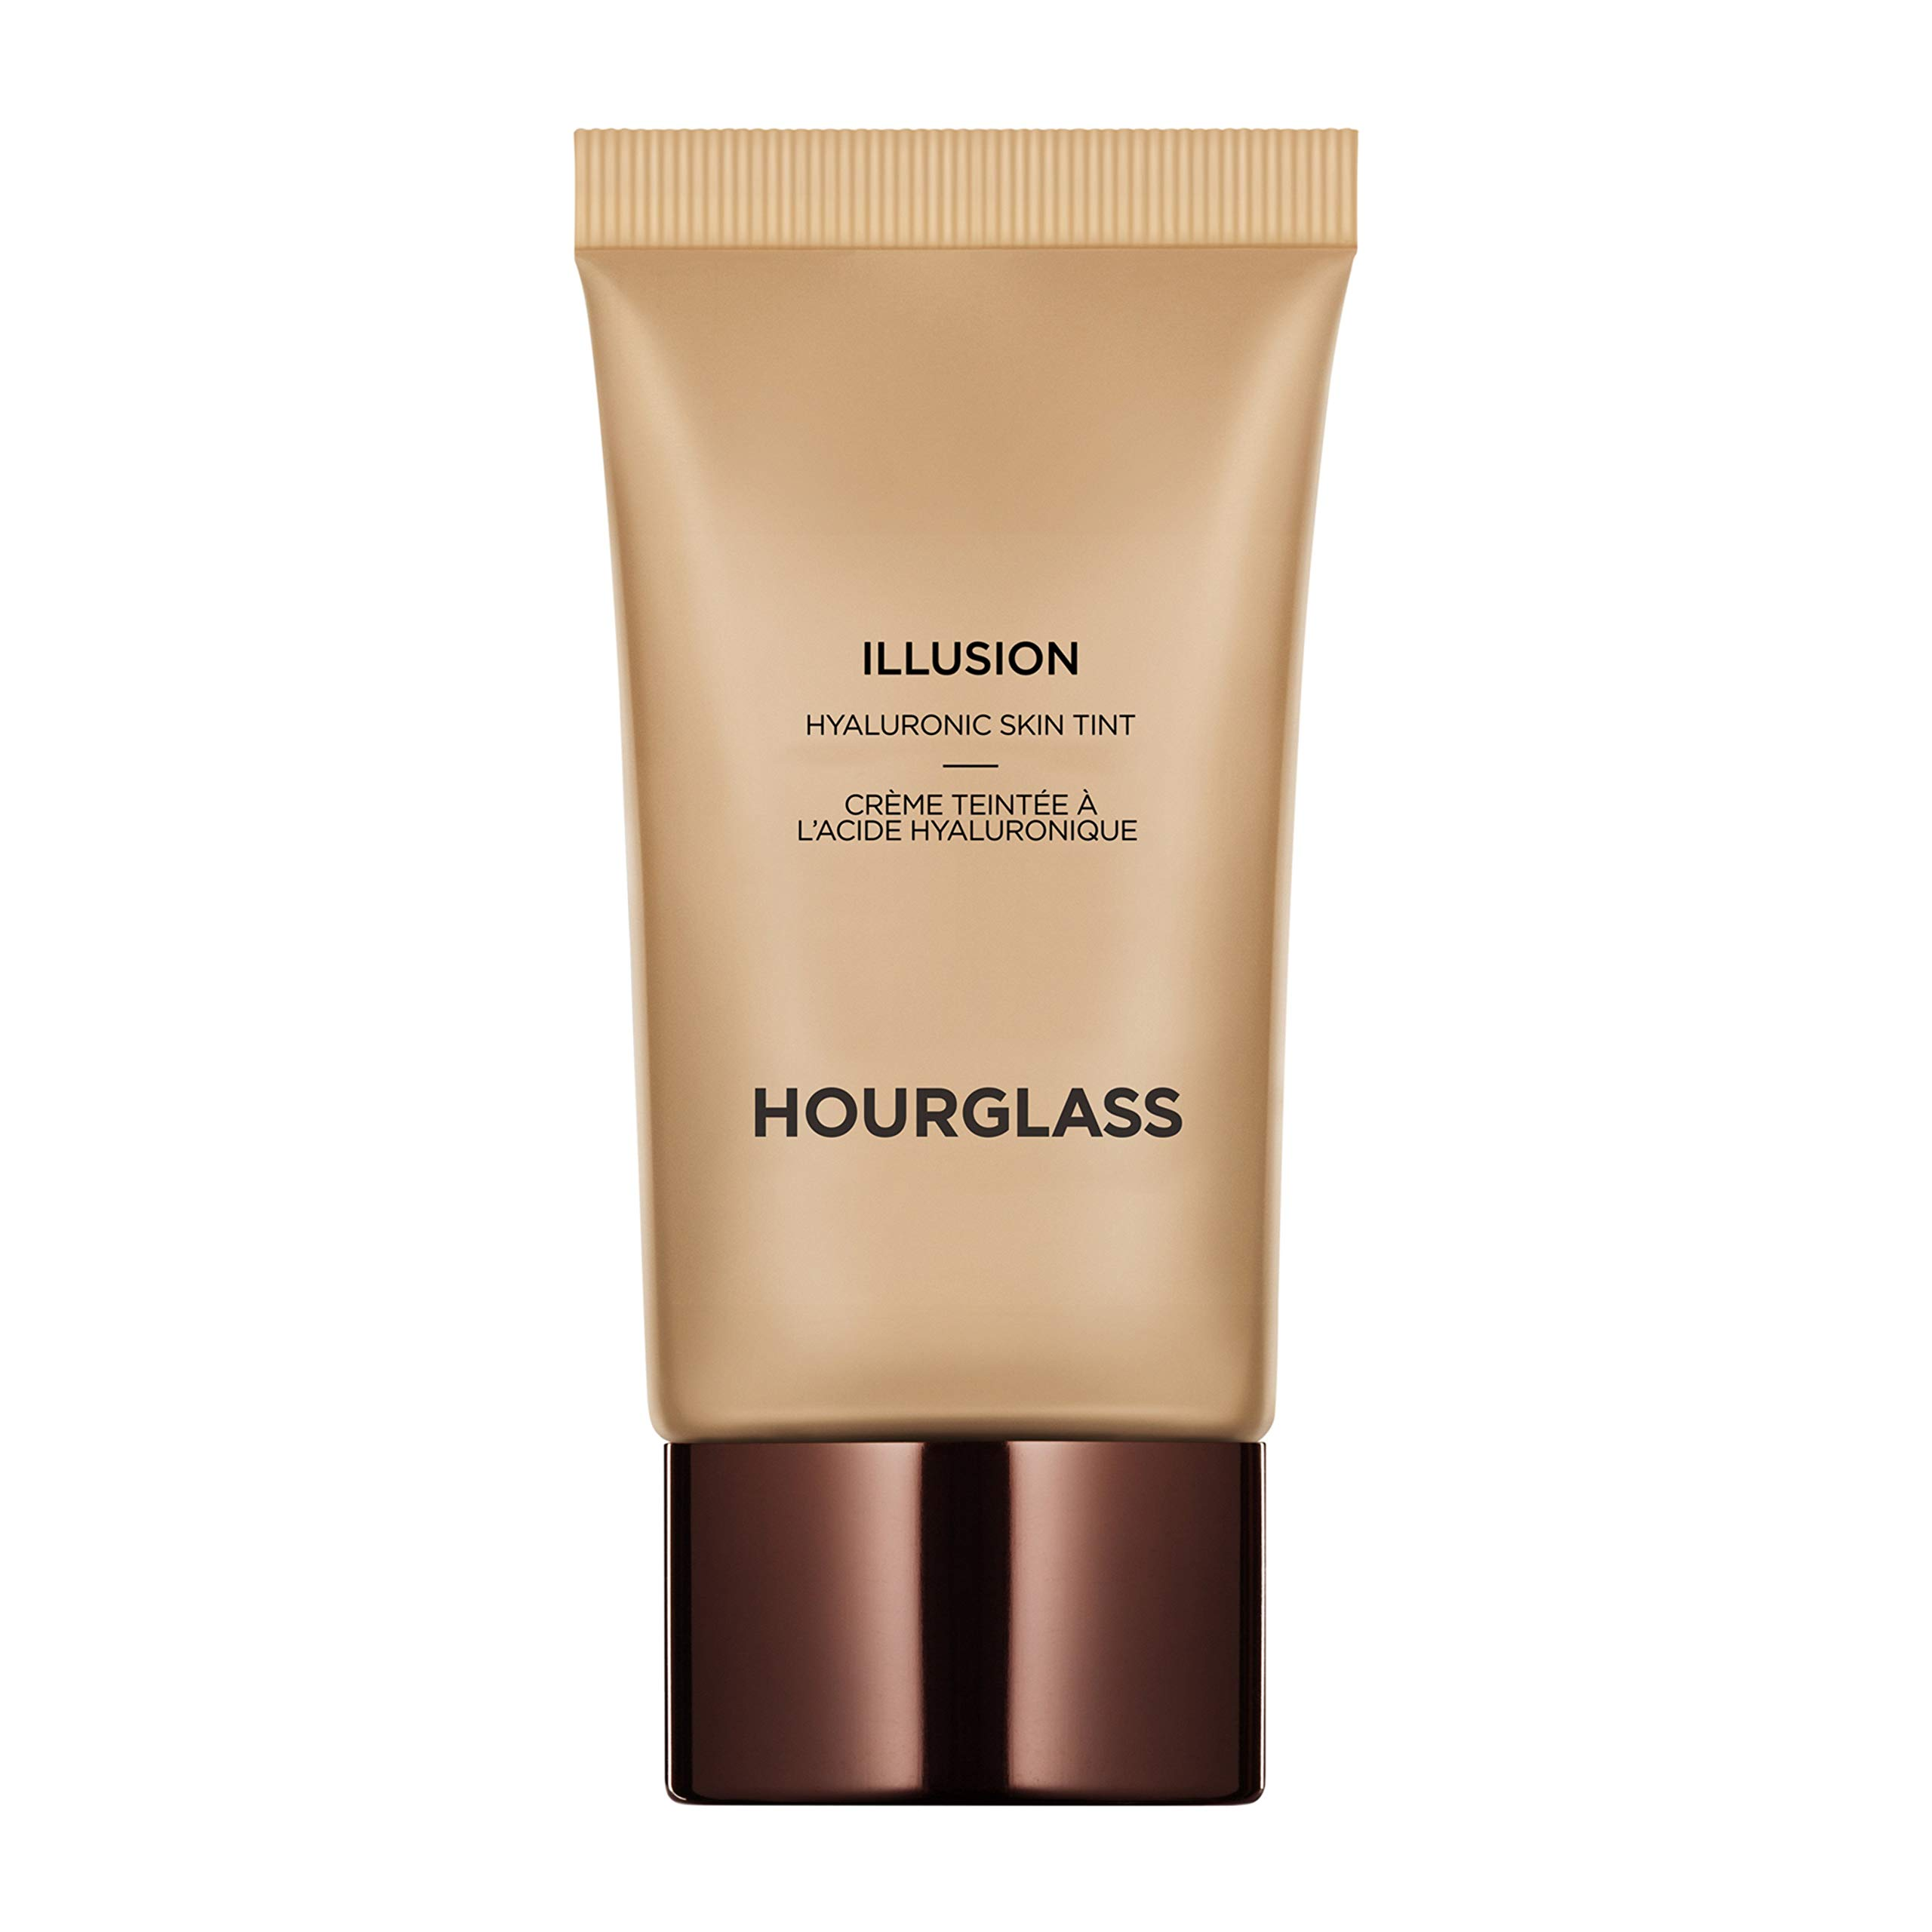 Hourglass Illusion Hyaluronic Skin Tint (Nude) by Unknown